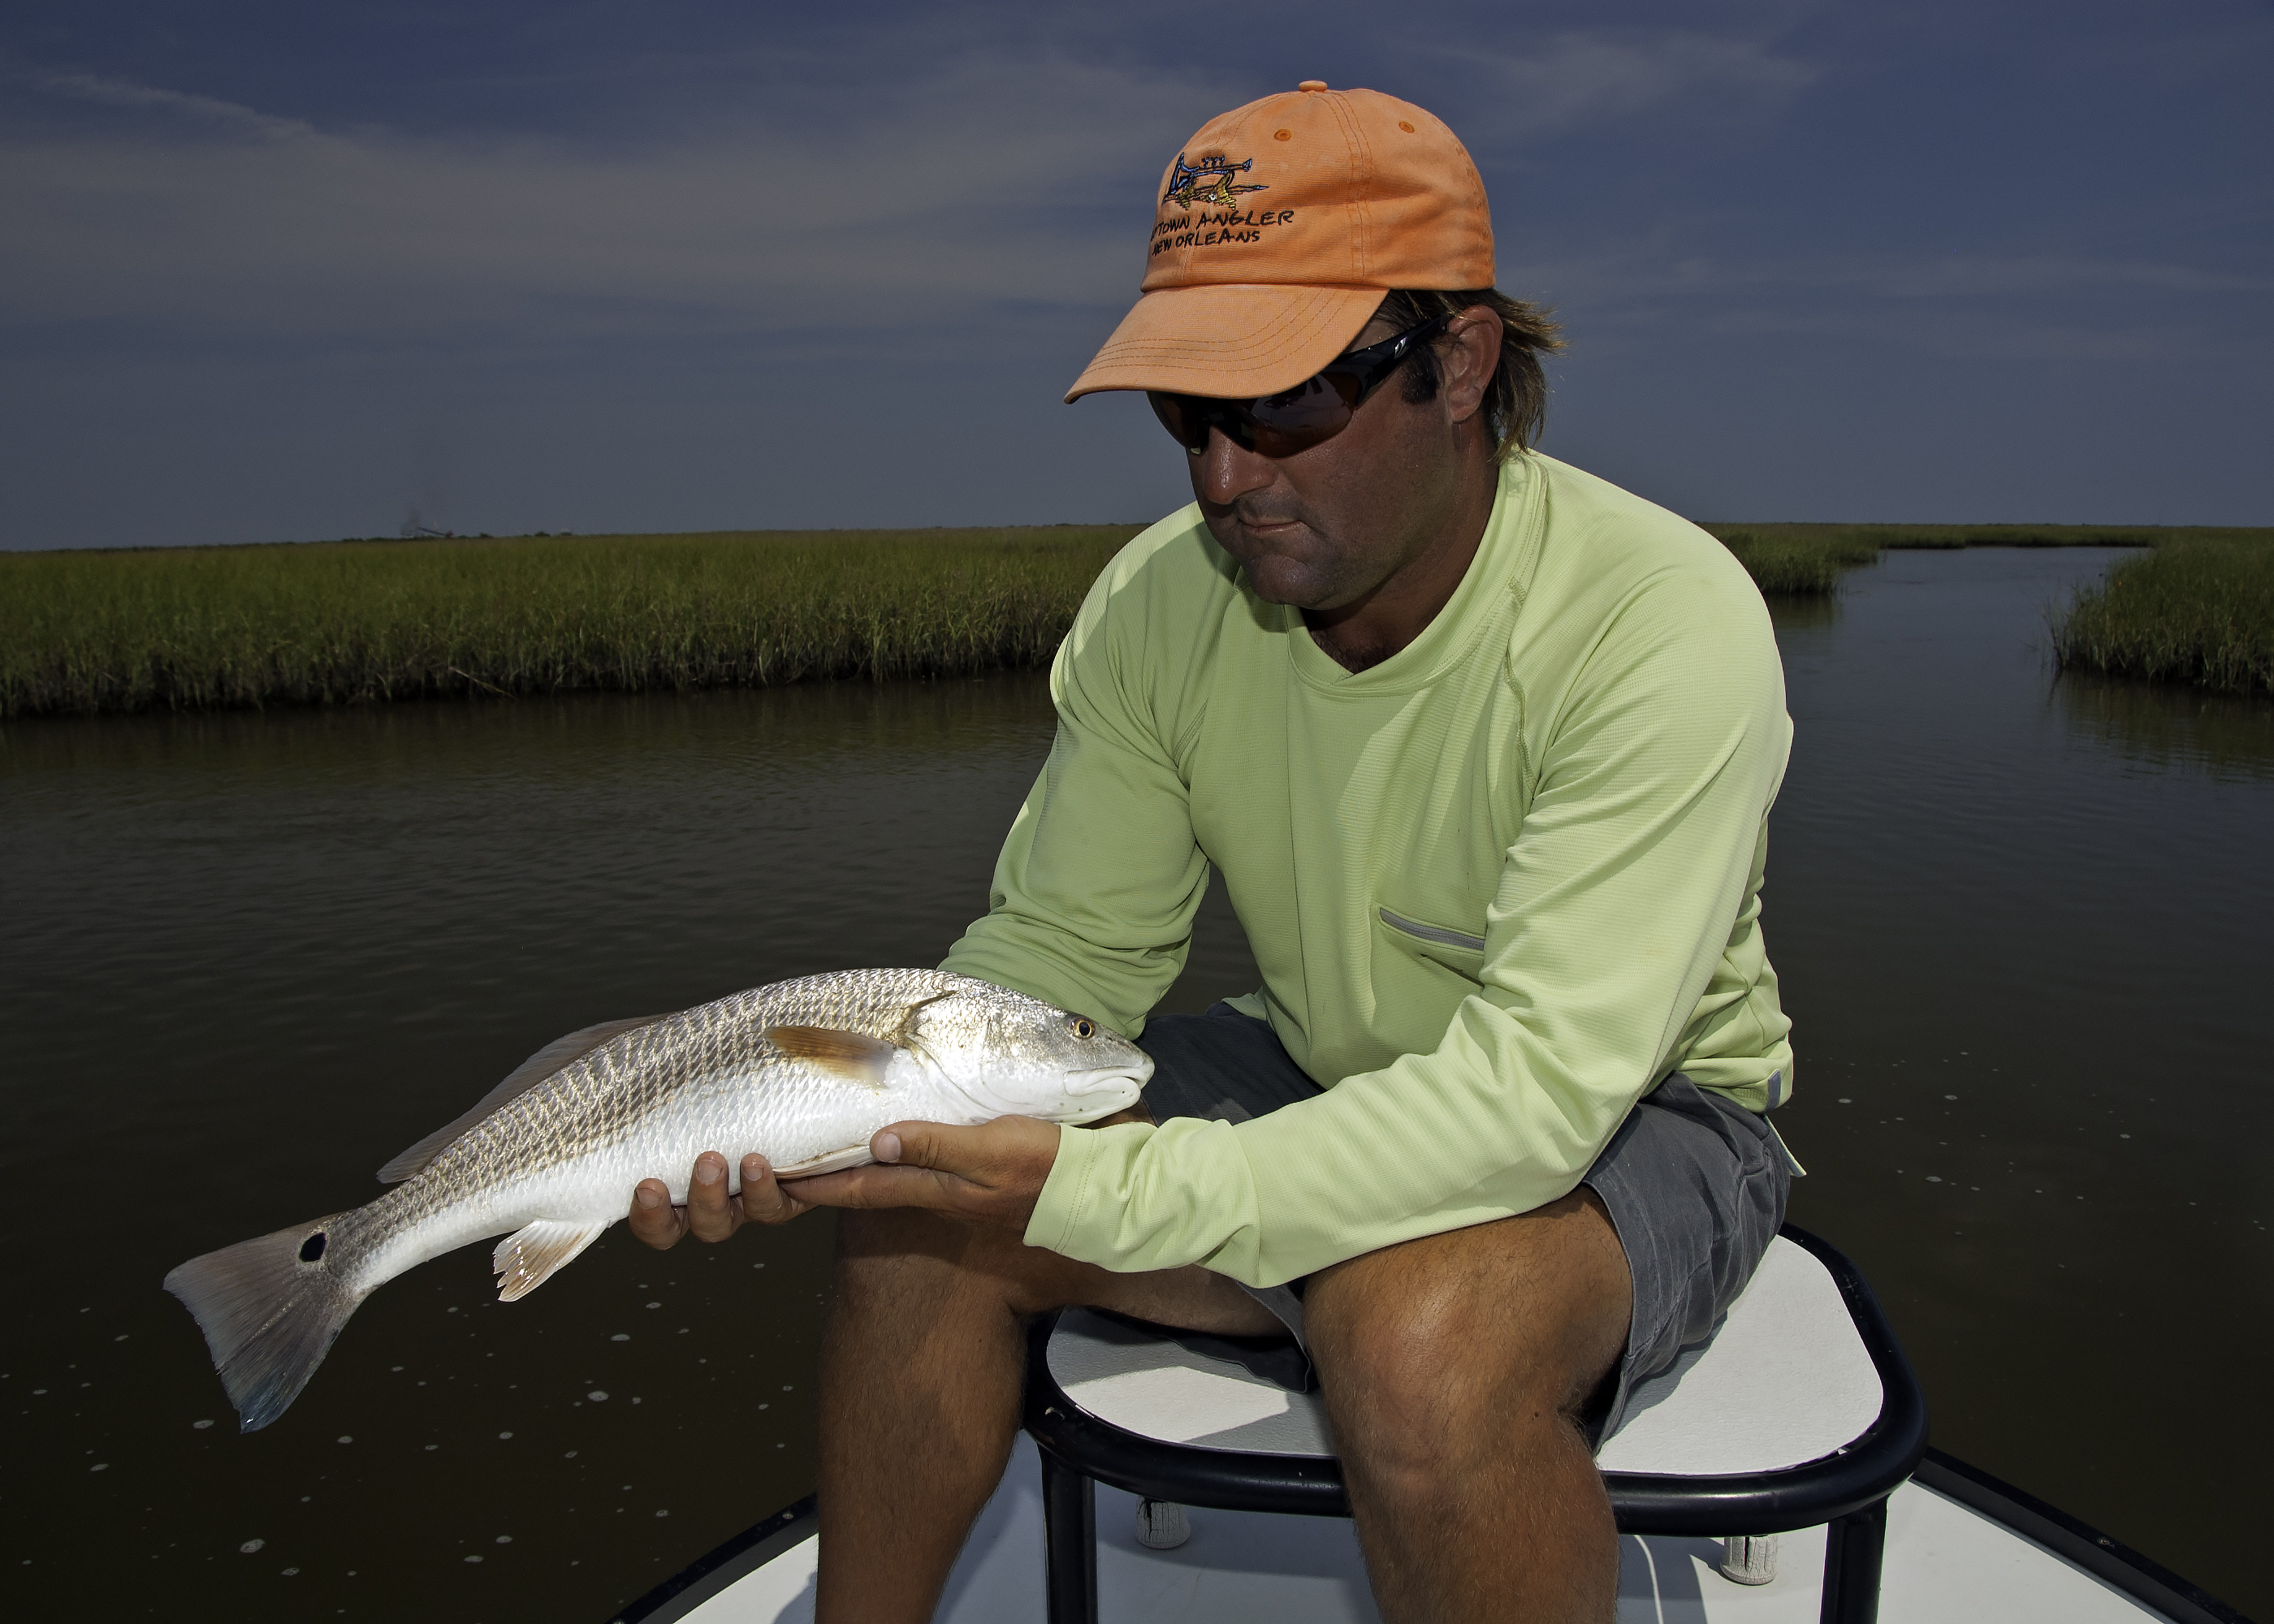 Brian with a nice Redfish